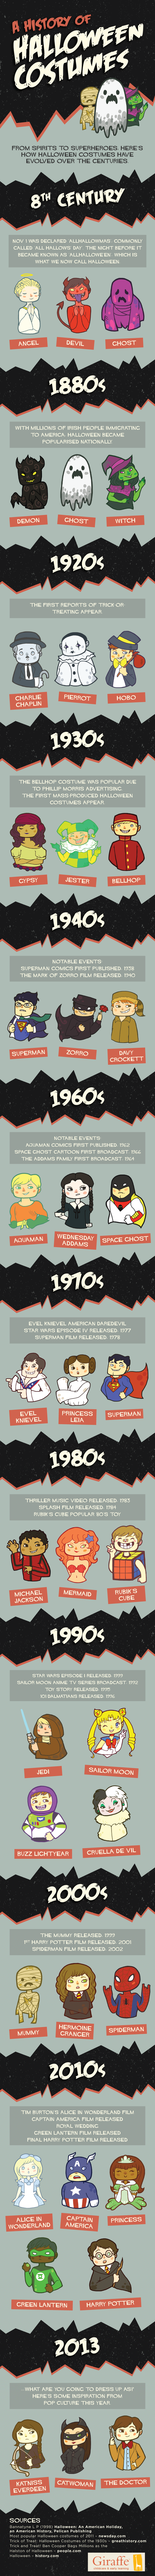 History of Halloween Costumes